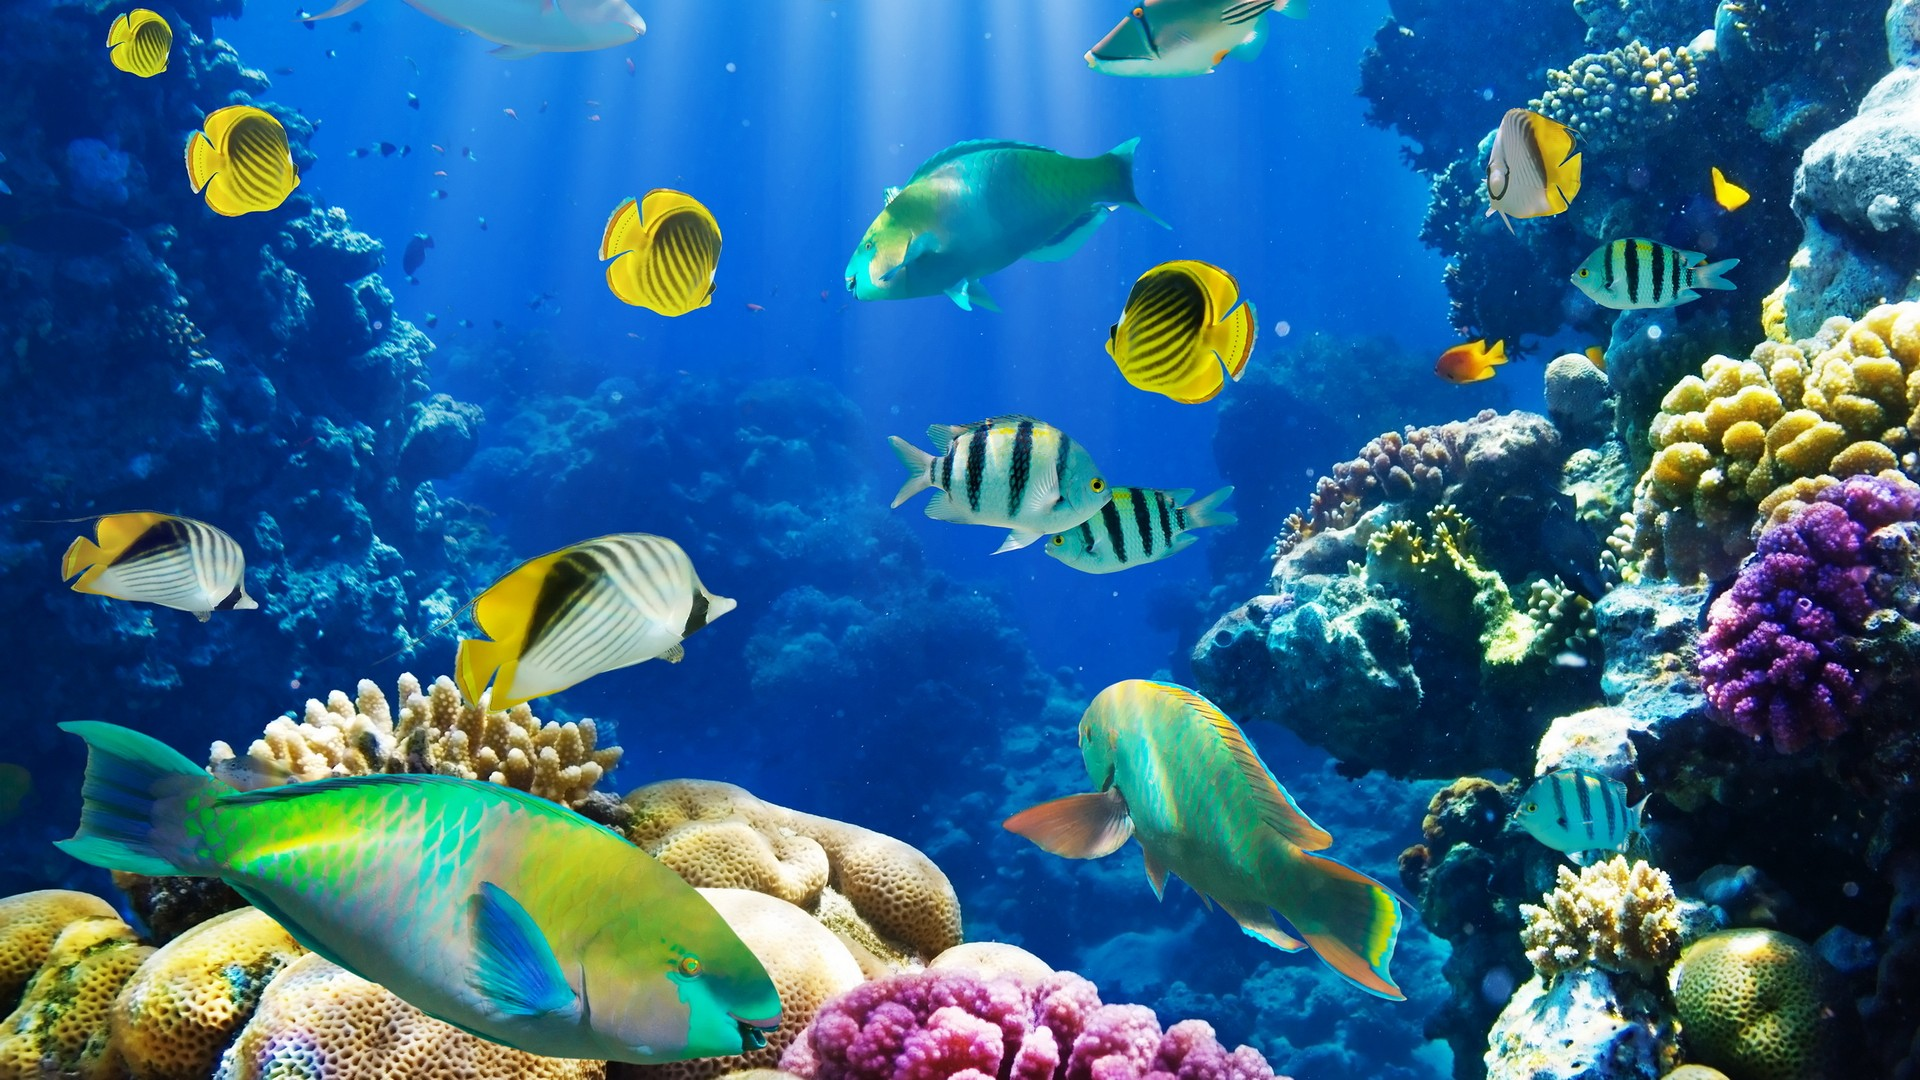 fish wallpaper amazing